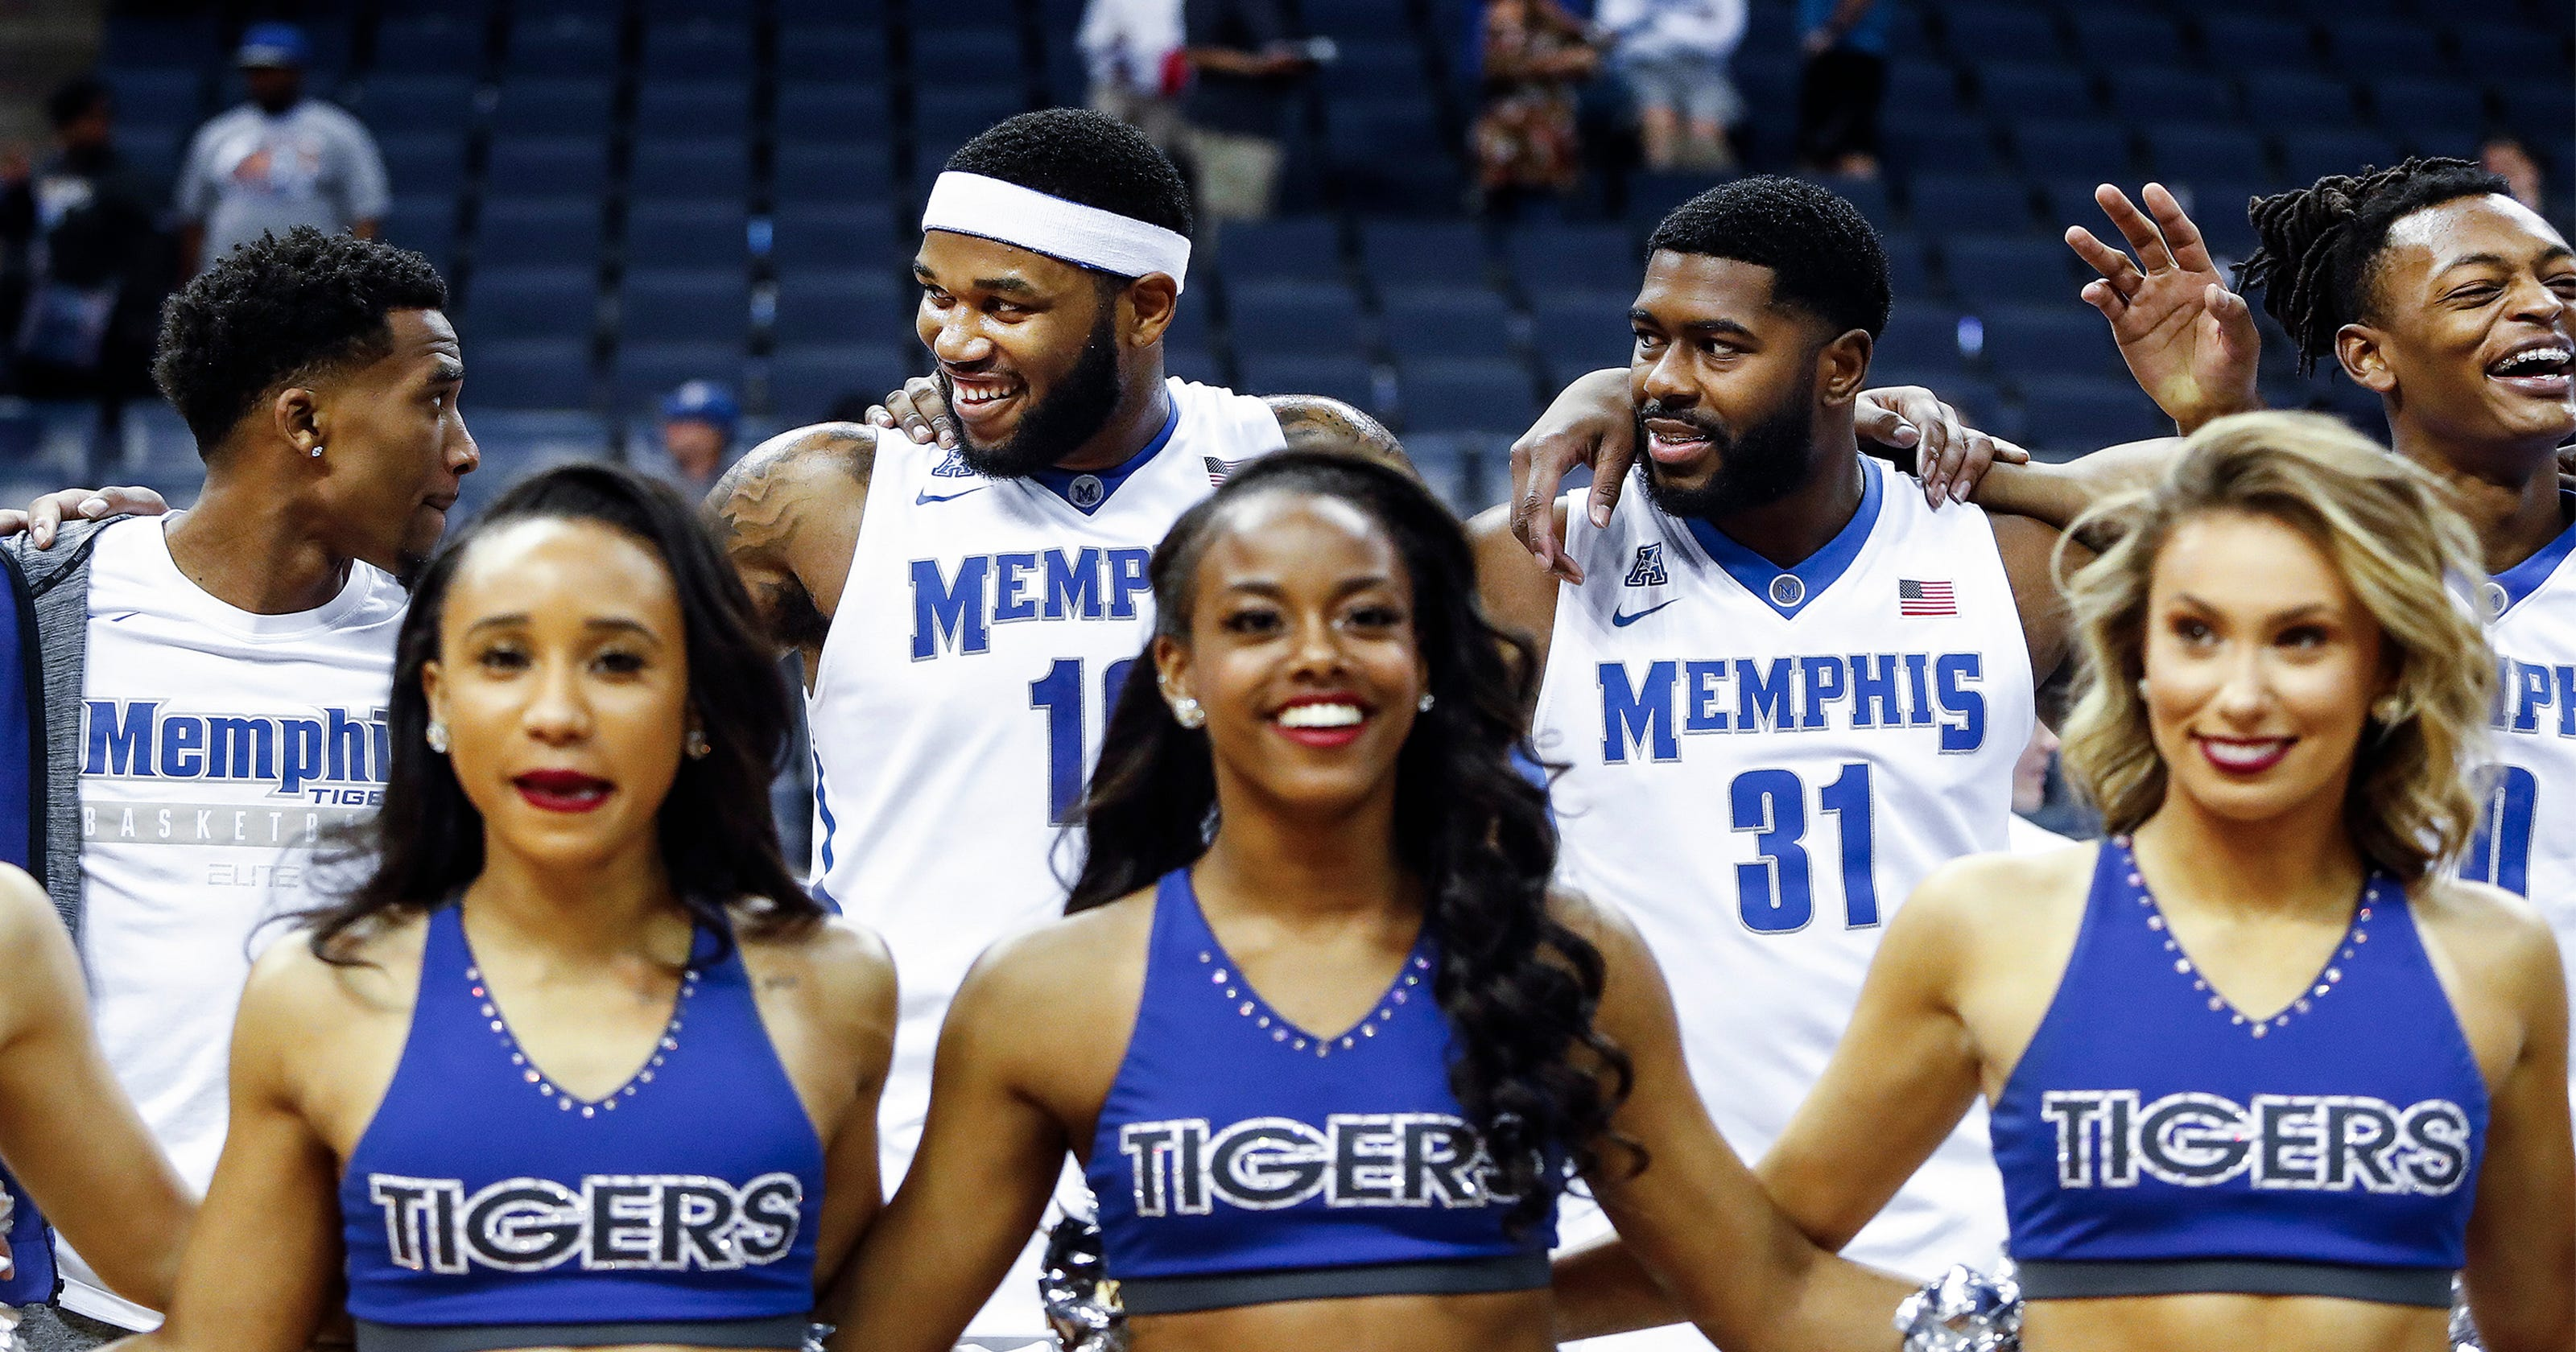 penny hardaway at memphis tigers: first aac conference opponents